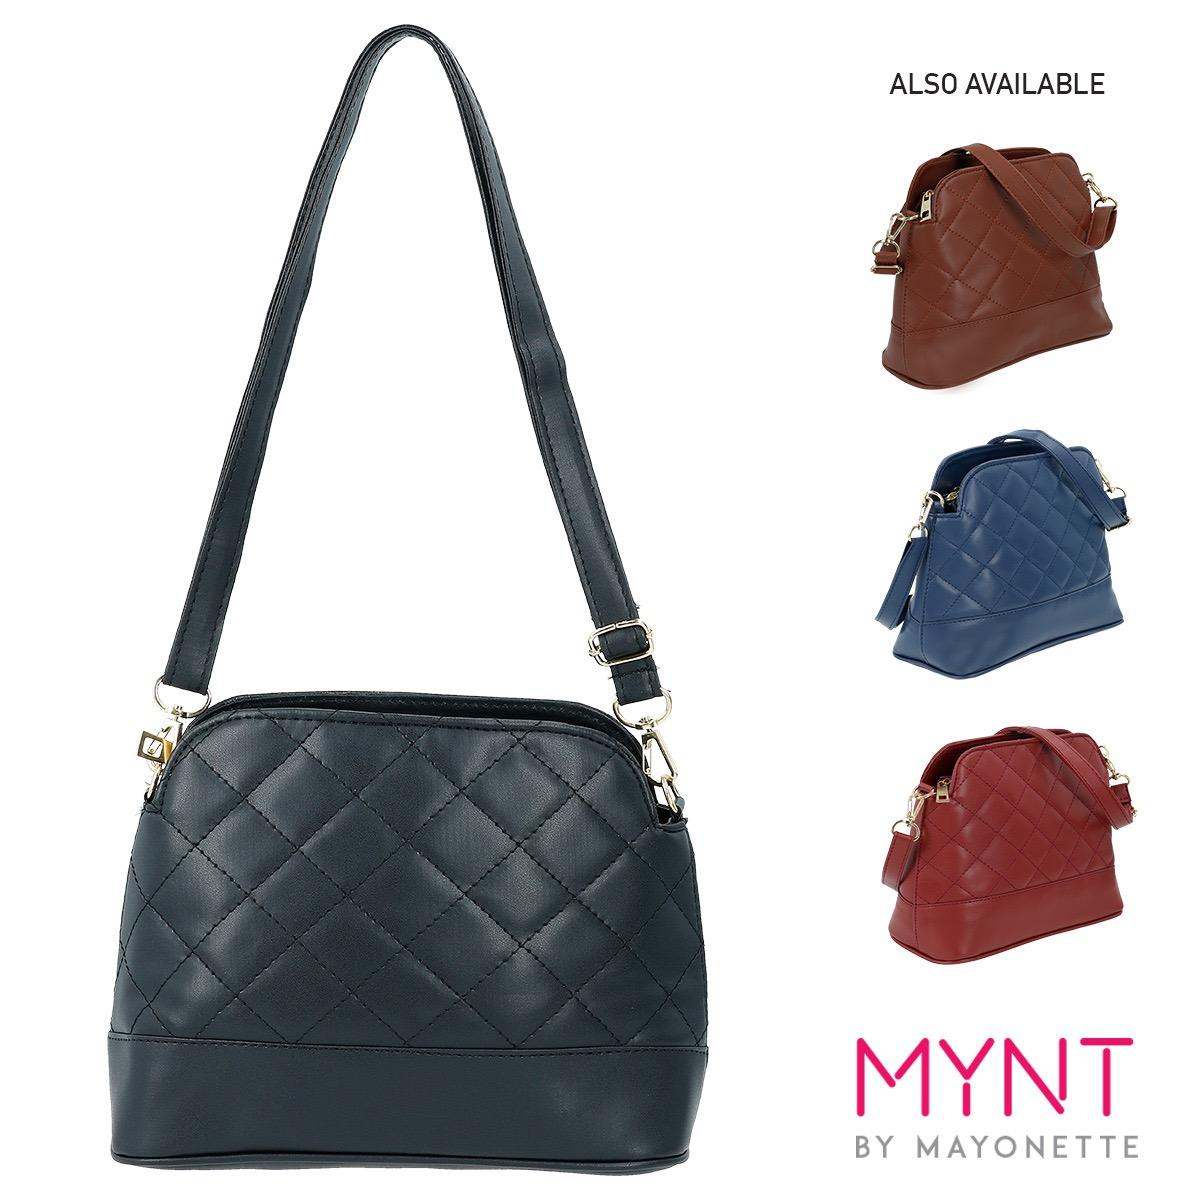 MYNT by Mayonette Tas wanita Tas Fashion Korean Style Tas Selempang Branded Trendy Jolyn Sling